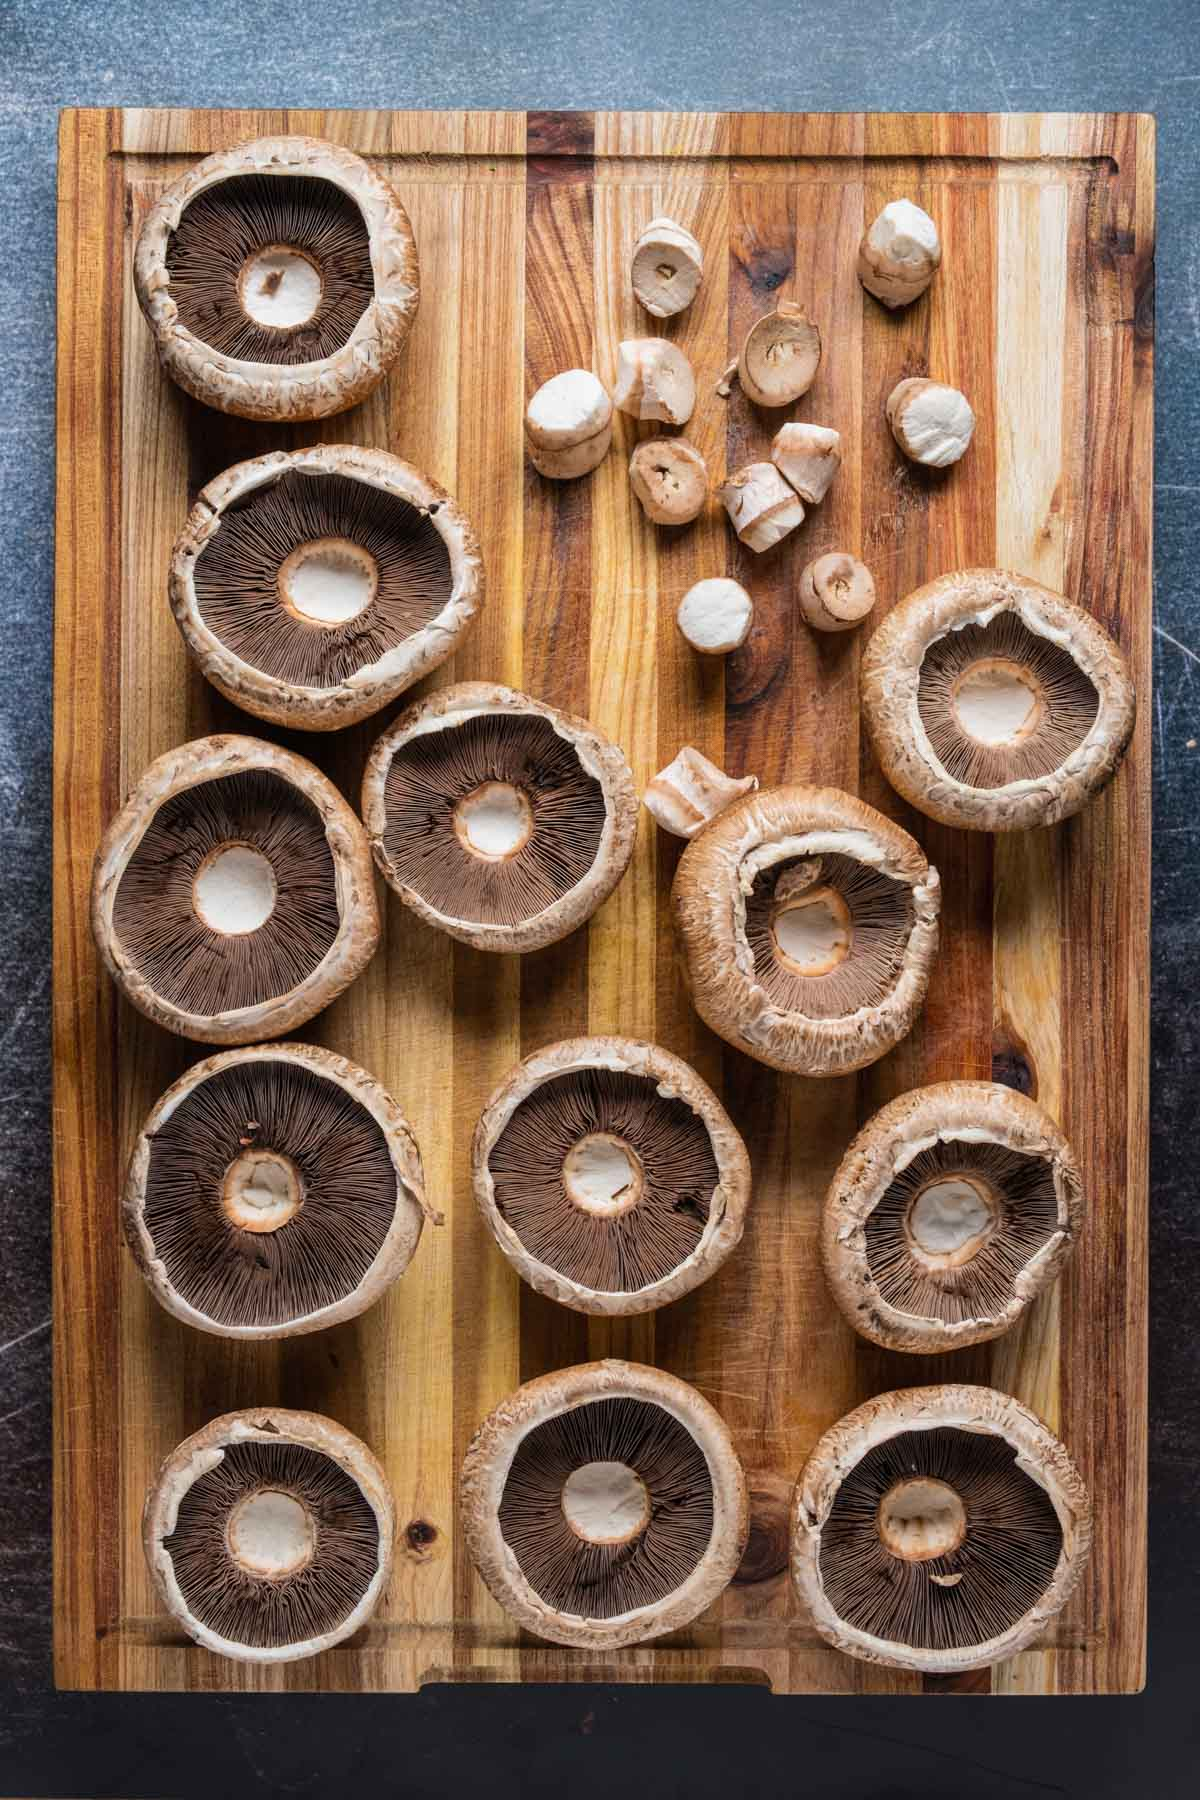 Mushrooms with stems removed on a wooden board.